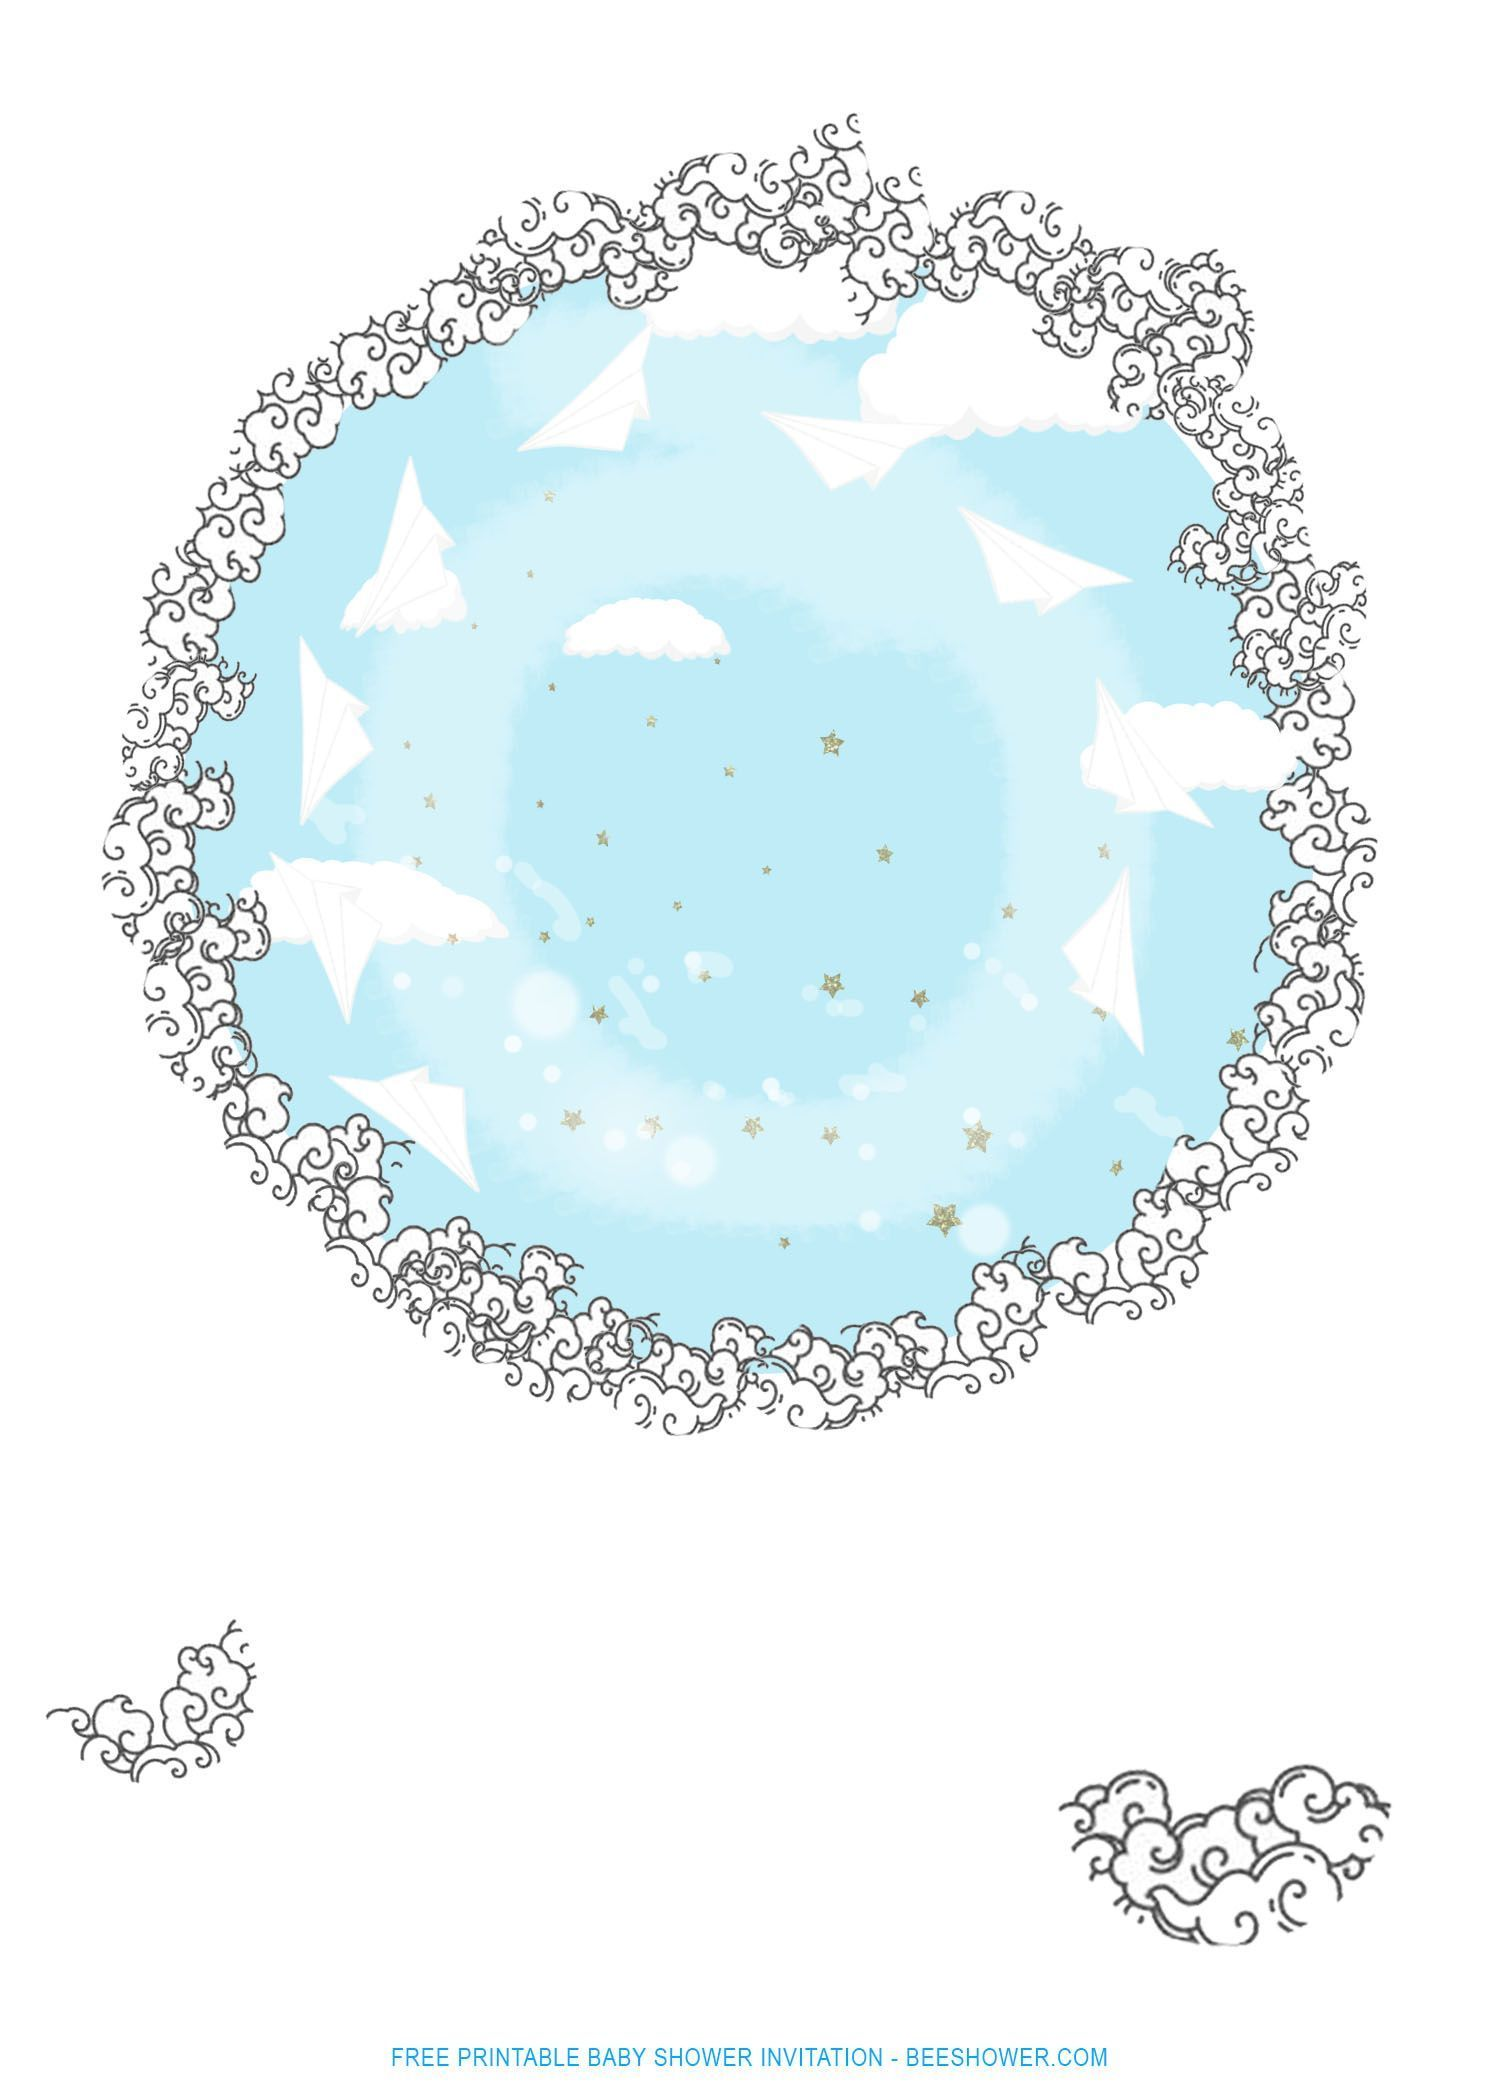 FREE Printable Fluffy Clouds Baby Shower Invitation Templates - #Baby #Clouds #F...